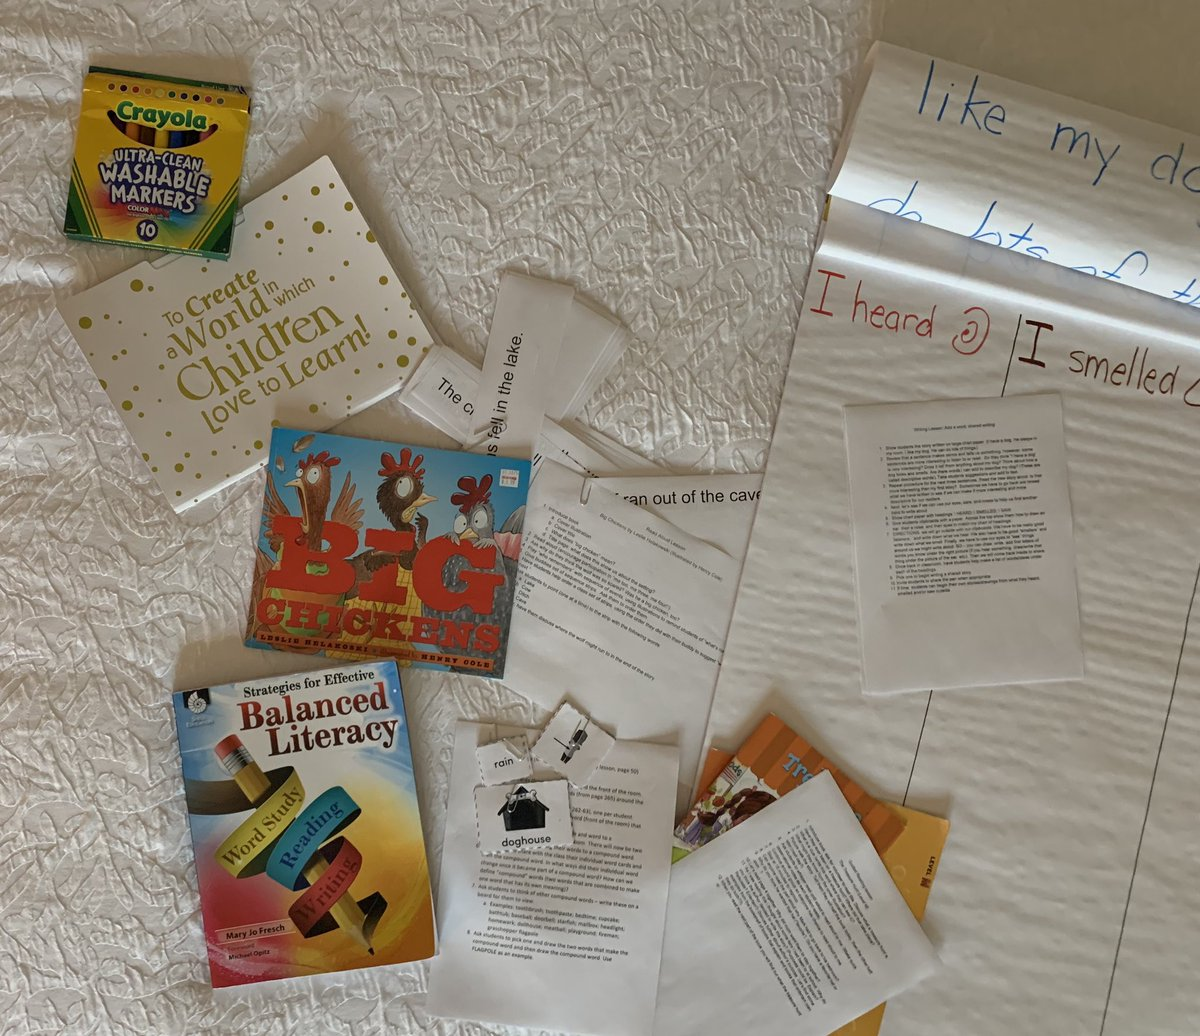 A great day watching K, 1st, and 2nd grade teachers at Mary Ford Elementary. Tomorrow-I get to teach. Cannot wait! Great #balancedliteracy going on in these classrooms. @tcmpub @shelleducation #mytcm <br>http://pic.twitter.com/W5pdXruWYI